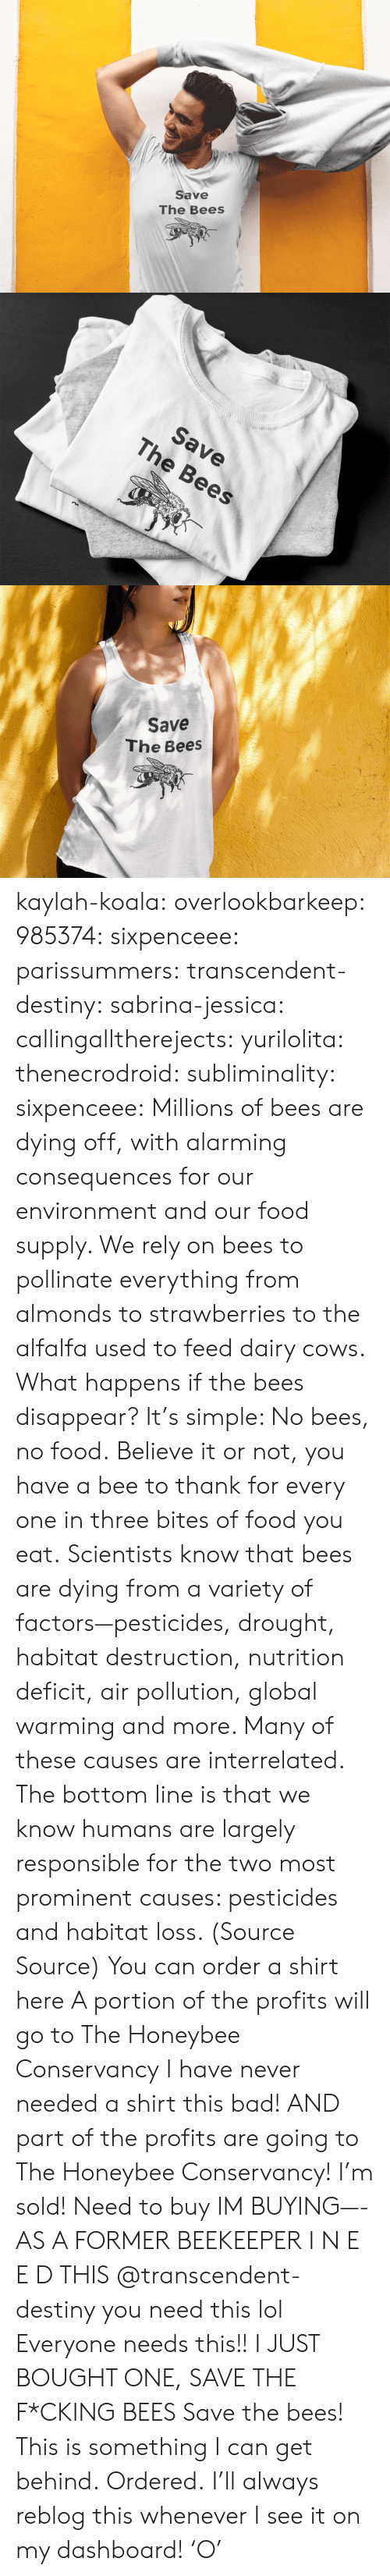 Alarming: Save  The Bees   Save  The Bees   Save  The Bees kaylah-koala:  overlookbarkeep: 985374:  sixpenceee:  parissummers:  transcendent-destiny:  sabrina-jessica:   callingalltherejects:  yurilolita:  thenecrodroid:  subliminality:   sixpenceee:   Millions of bees are dying off, with alarming consequences for our environment and our food supply. We rely on bees to pollinate everything from almonds to strawberries to the alfalfa used to feed dairy cows. What happens if the bees disappear? It's simple: No bees, no food.Believe it or not, you have a bee to thank for every one in three bites of food you eat. Scientists know that bees are dying from a variety of factors—pesticides, drought, habitat destruction, nutrition deficit, air pollution, global warming and more. Many of these causes are interrelated. The bottom line is that we know humans are largely responsible for the two most prominent causes: pesticides and habitat loss. (Source  Source) You can order a shirt here A portion of the profits will go toThe Honeybee Conservancy   I have never needed a shirt this bad! AND part of the profits are going to The Honeybee Conservancy! I'm sold!   Need to buy   IM BUYING—-   AS A FORMER BEEKEEPER I N E E D THIS   @transcendent-destiny you need this lol  Everyone needs this!!   I JUST BOUGHT ONE, SAVE THE F*CKING BEES  Save the bees!  This is something I can get behind.   Ordered.   I'll always reblog this whenever I see it on my dashboard! 'O'